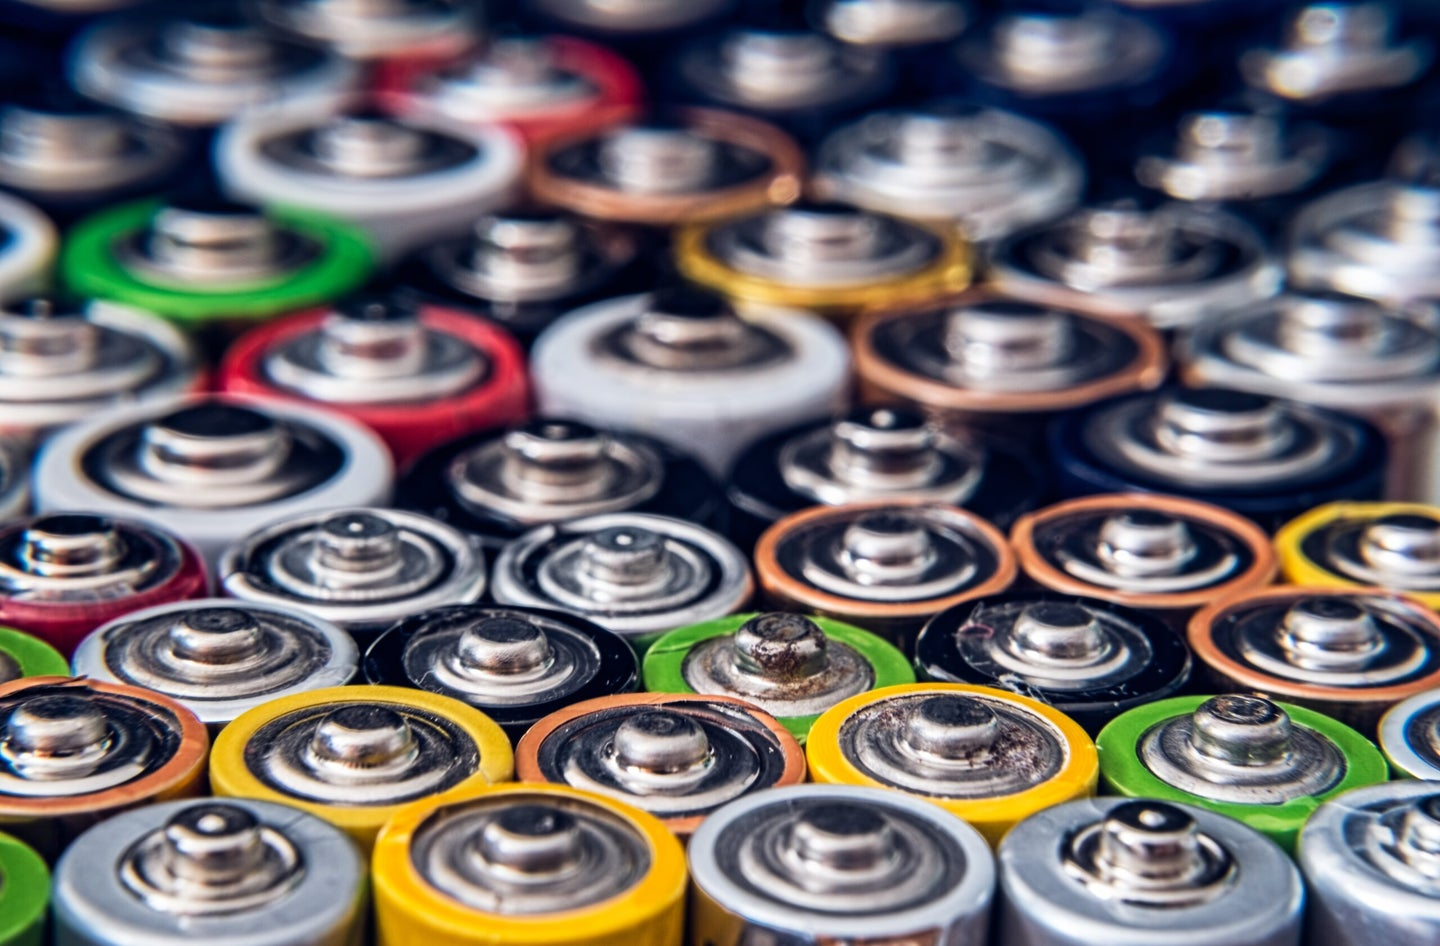 Drained disposable batteries of various size